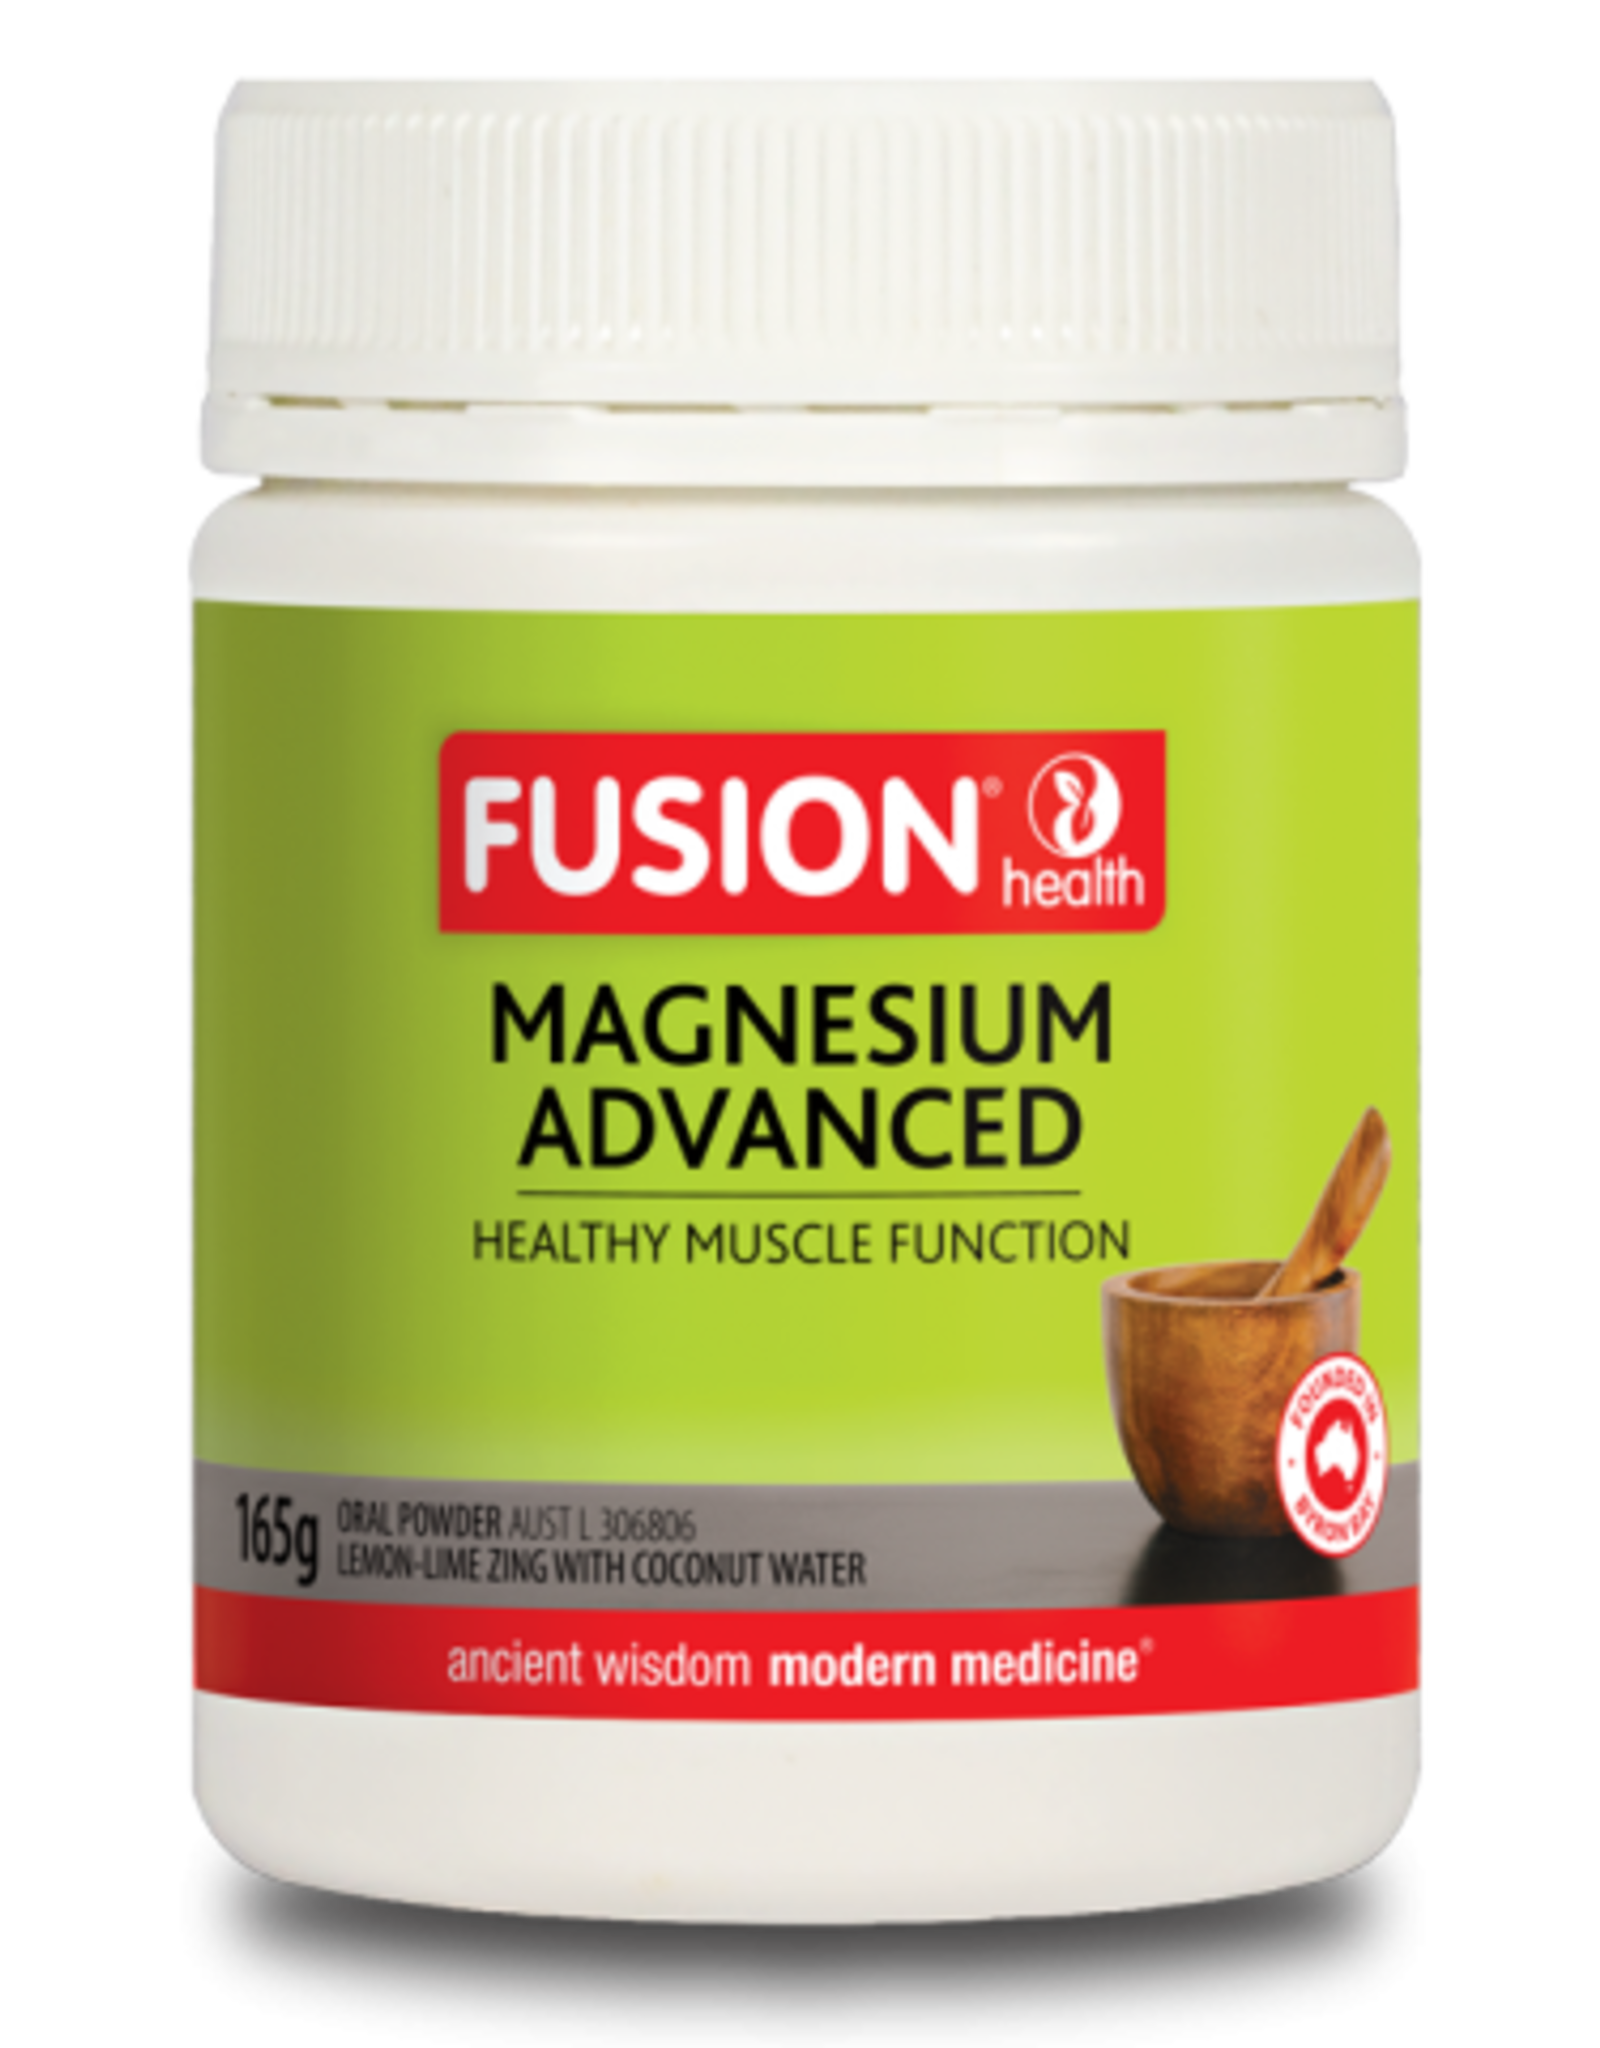 Fusion Magnesium Advanced Powder 165g